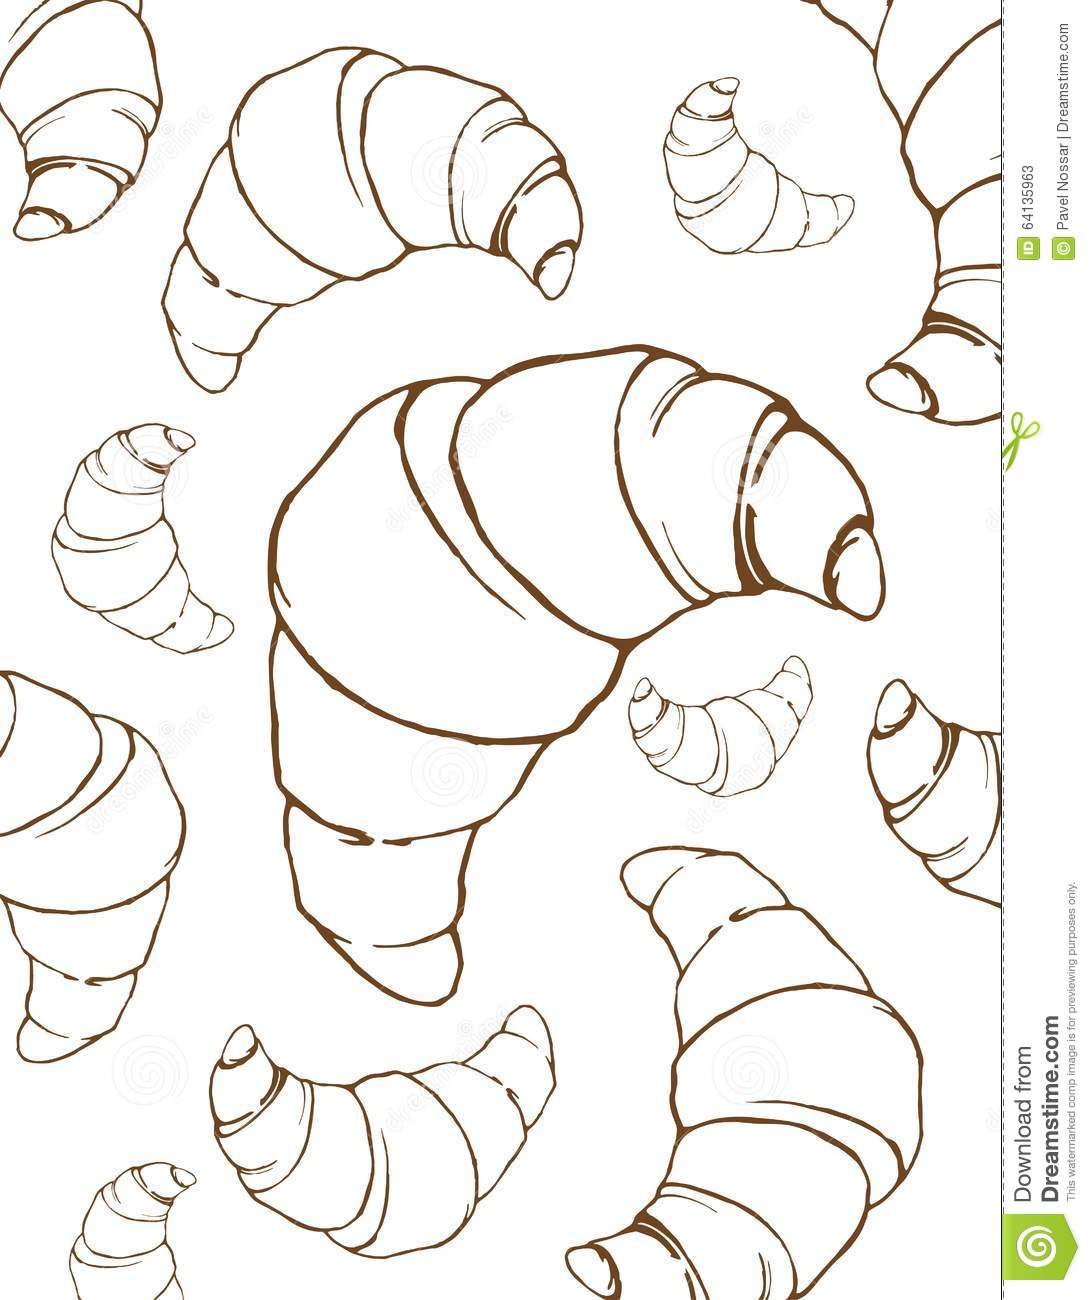 Croissants Linear Drawing Background Stock Vector Image